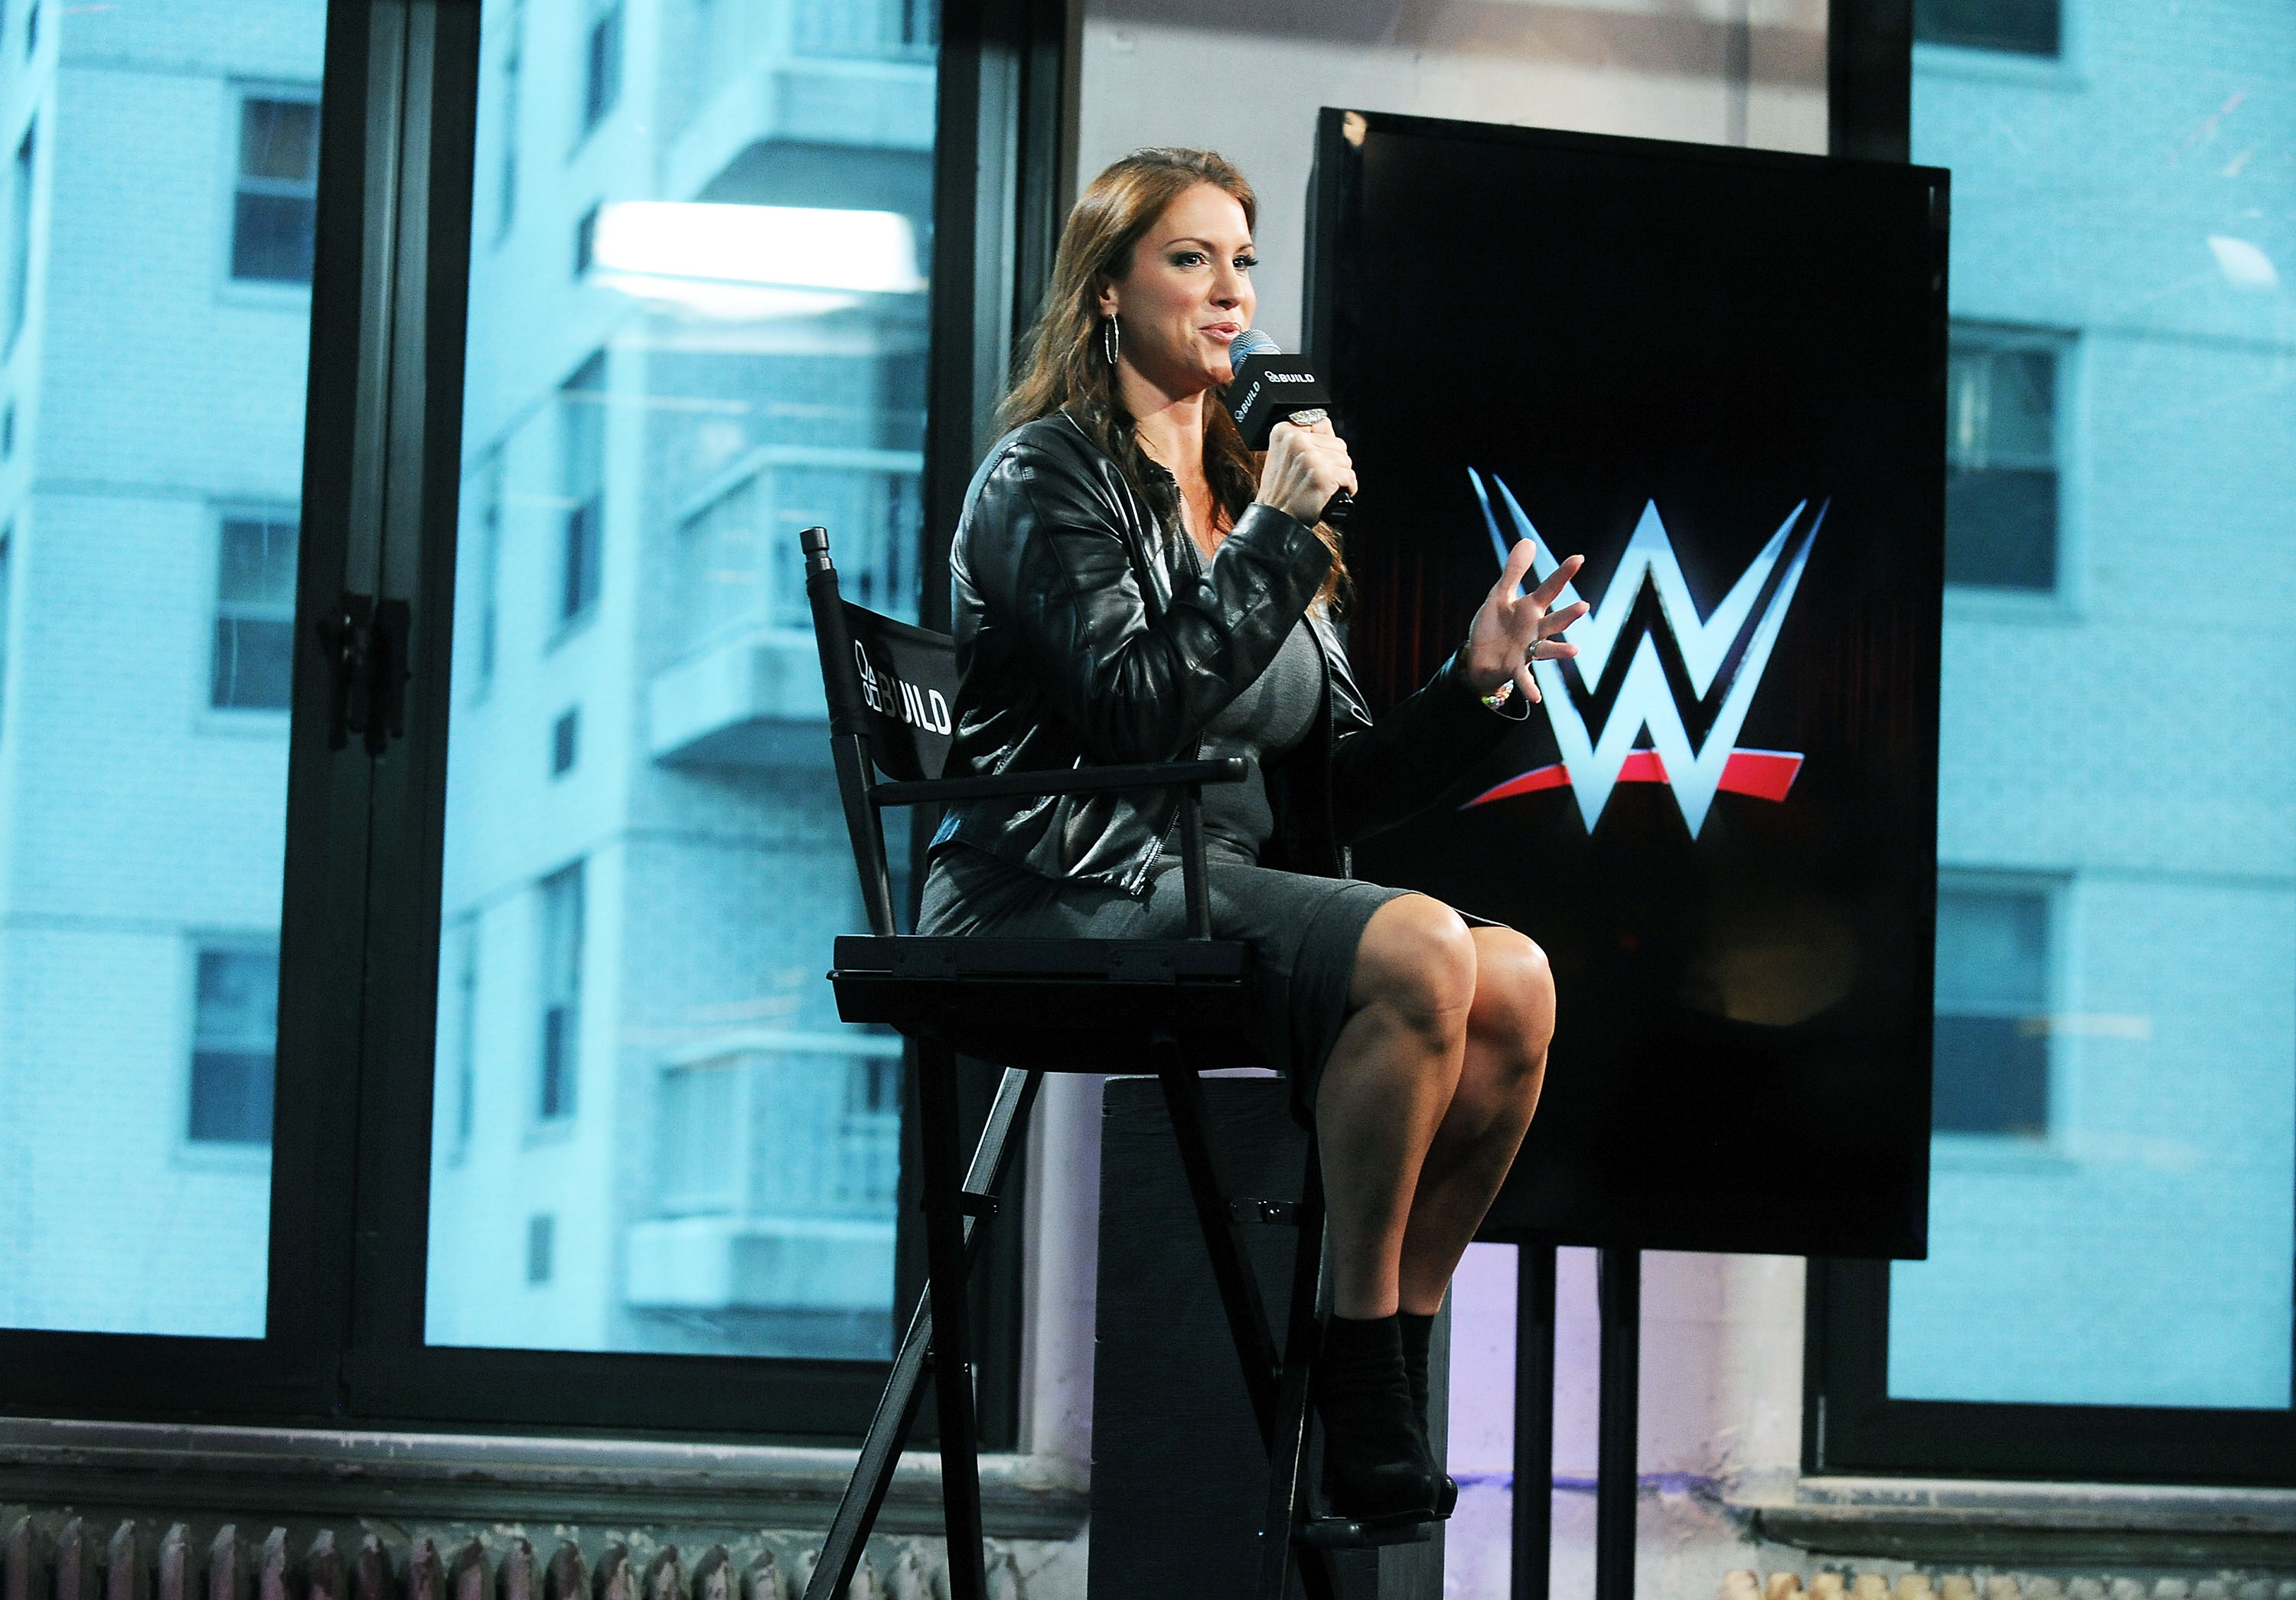 TV personality and Chief Brand Officer of WWE Stephanie McMahon attends AOL BUILD Presents Stephanie McMahon at AOL Studios In New York on October 16, 2015 in New York City.